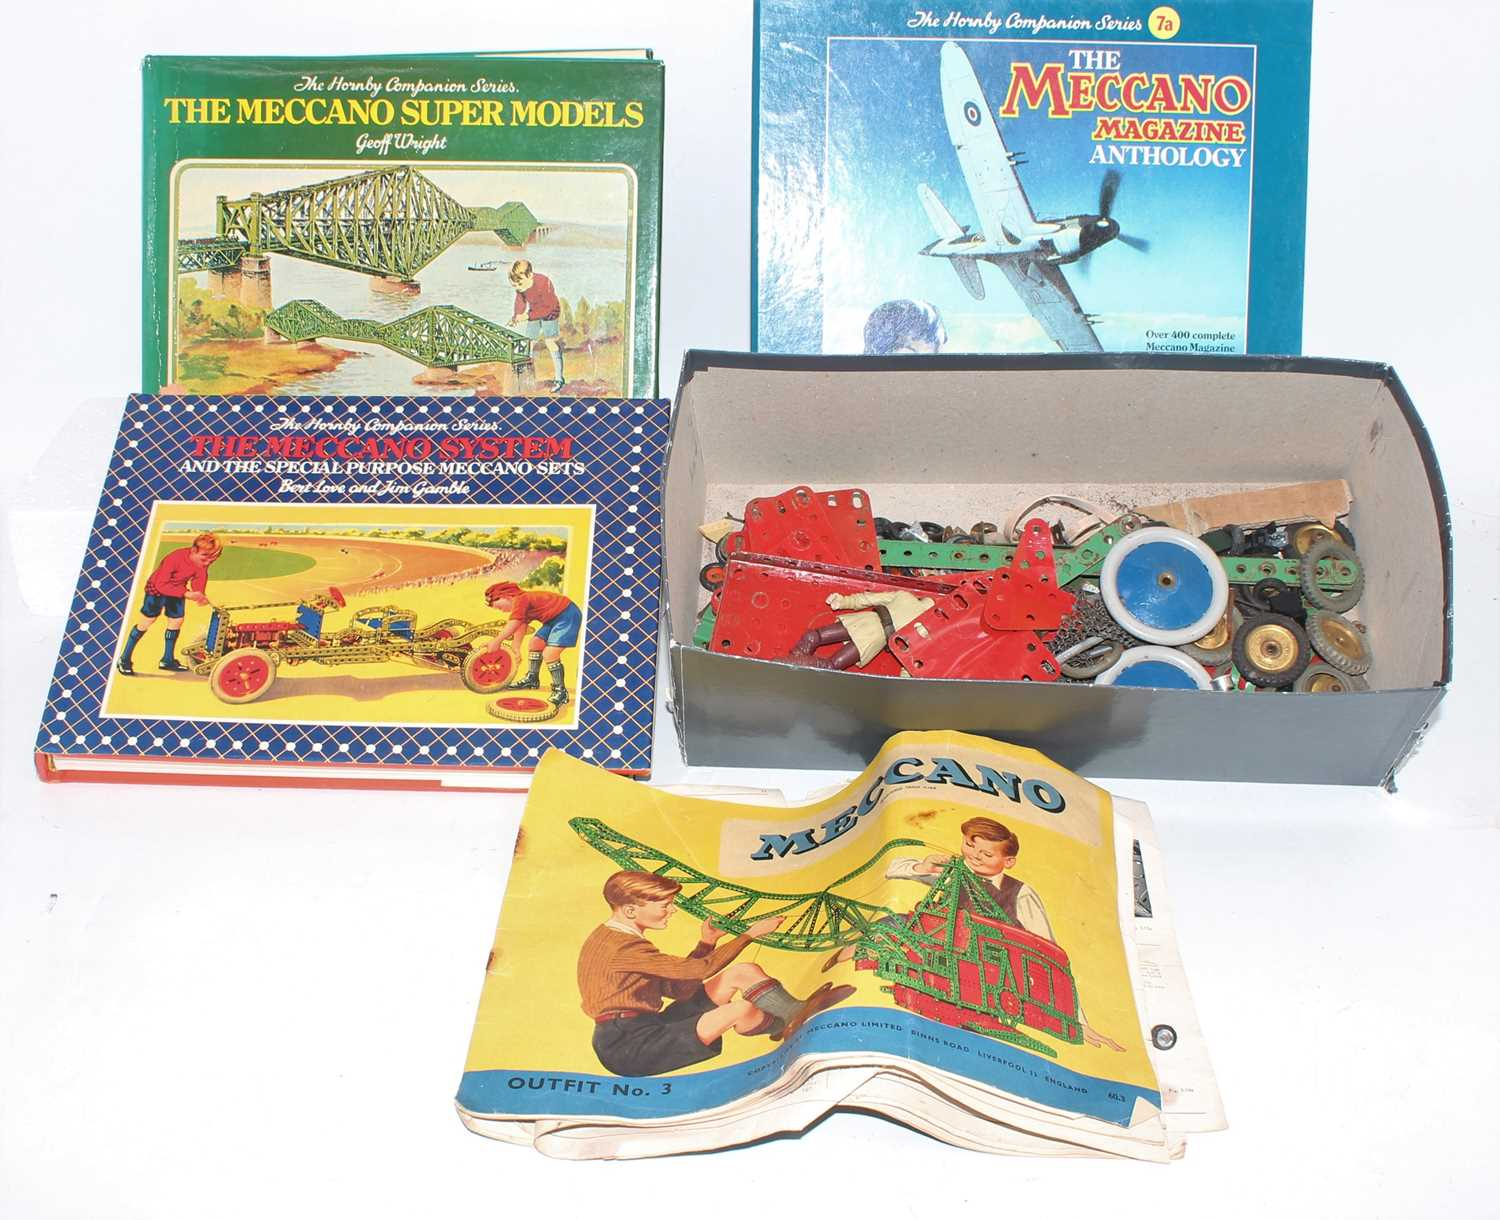 A collection of various mixed loose 1950's Meccano and hardback books, including The Hornby